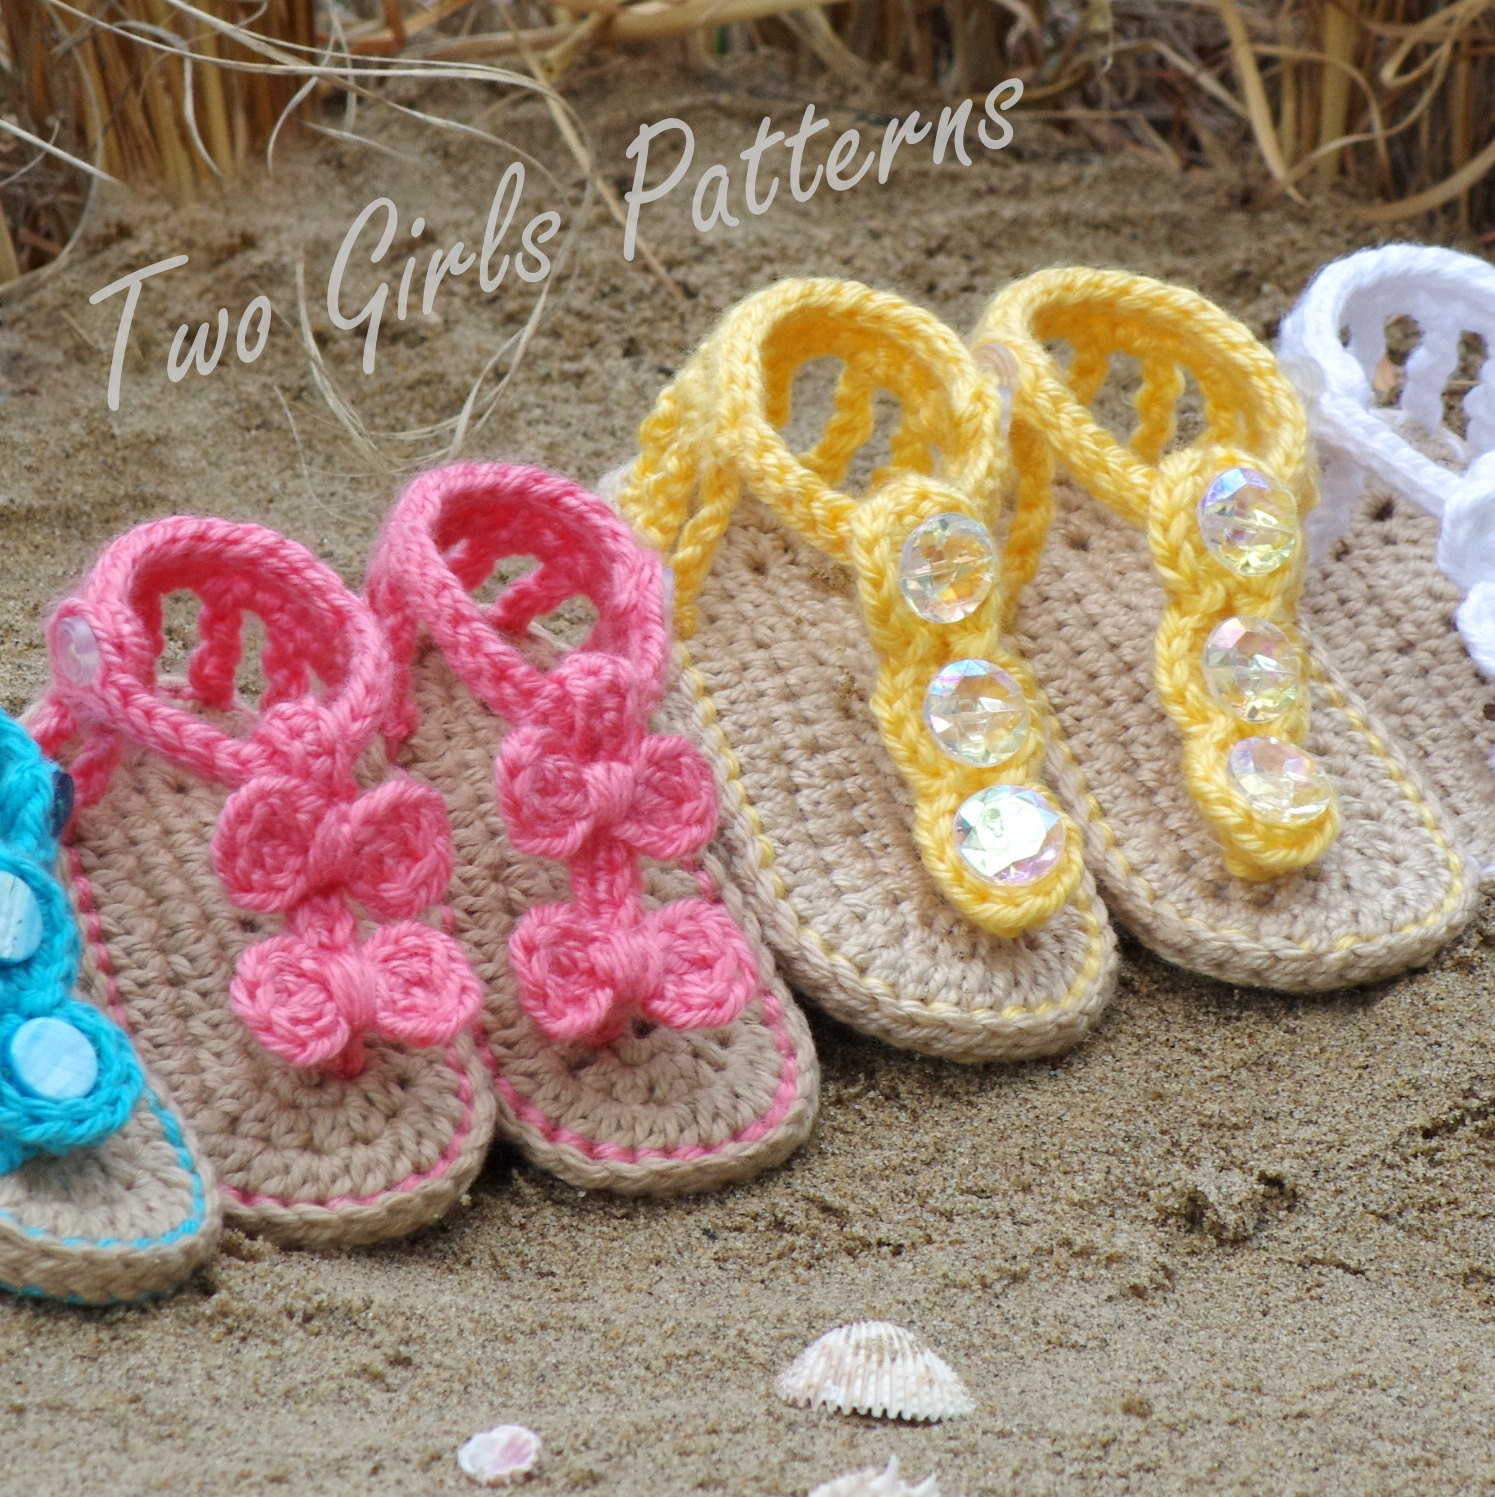 Crochet Baby Sandals Pattern Elegant Baby Crochet Pattern Sandal 2 Versions and Free Barefoot Of Perfect 43 Photos Crochet Baby Sandals Pattern